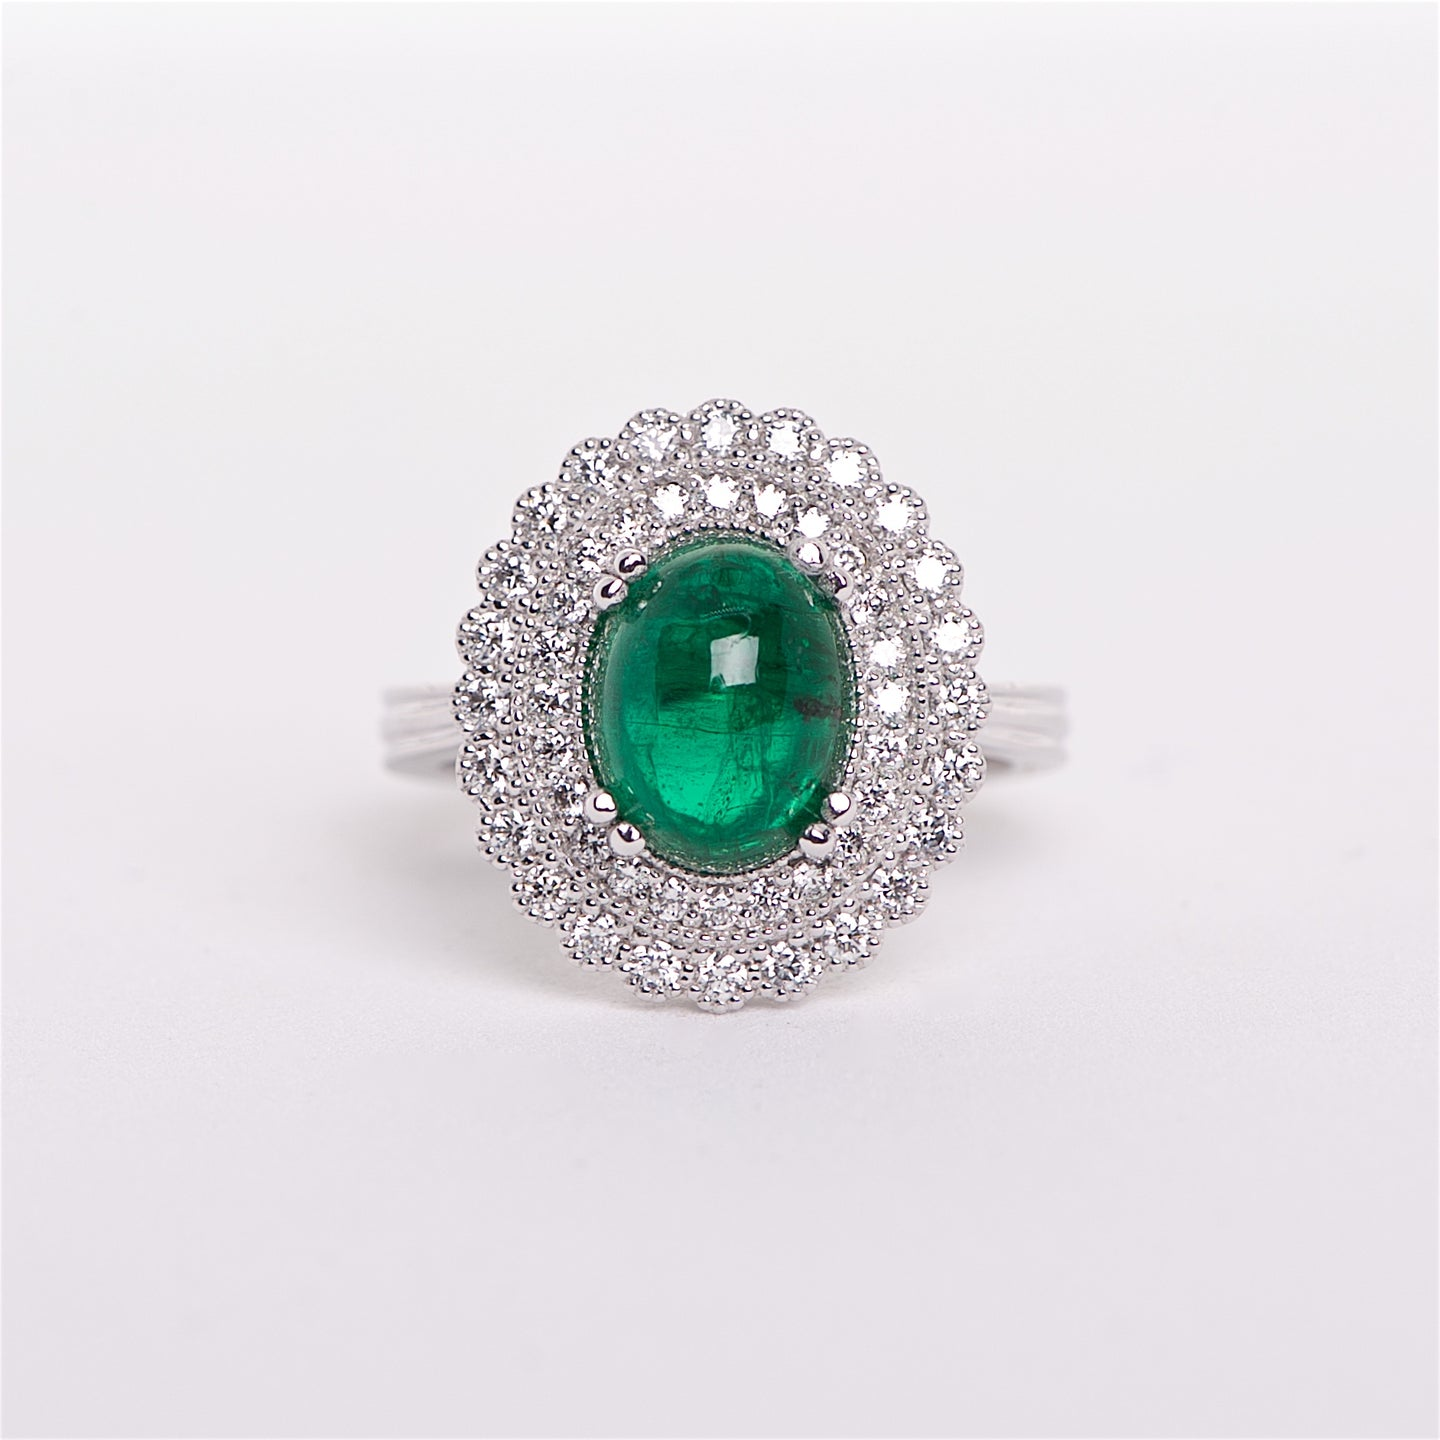 The Lauren - GIA certified Emerald and Diamond ring